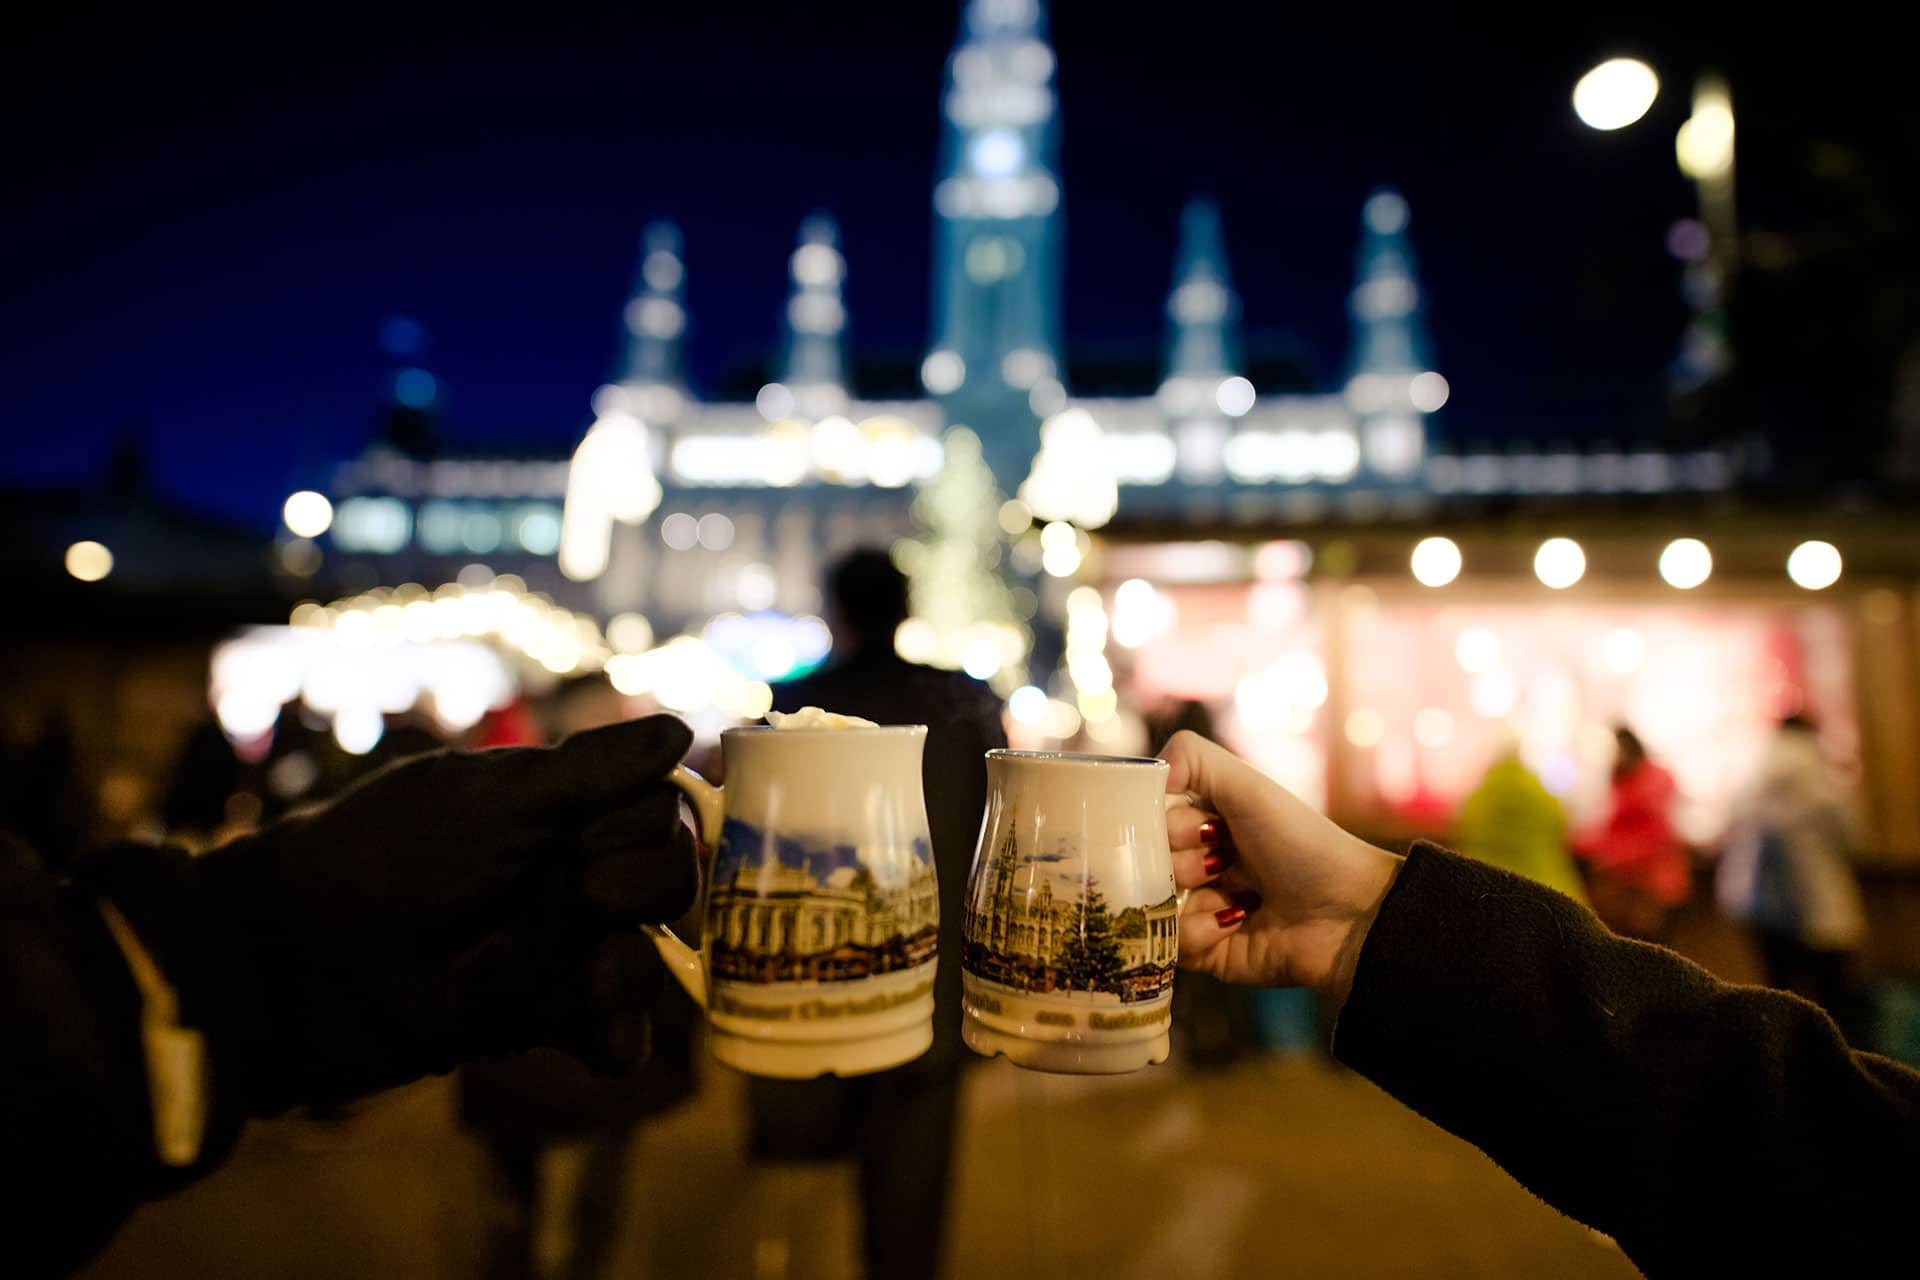 Drinking Gluhwein in Vienna